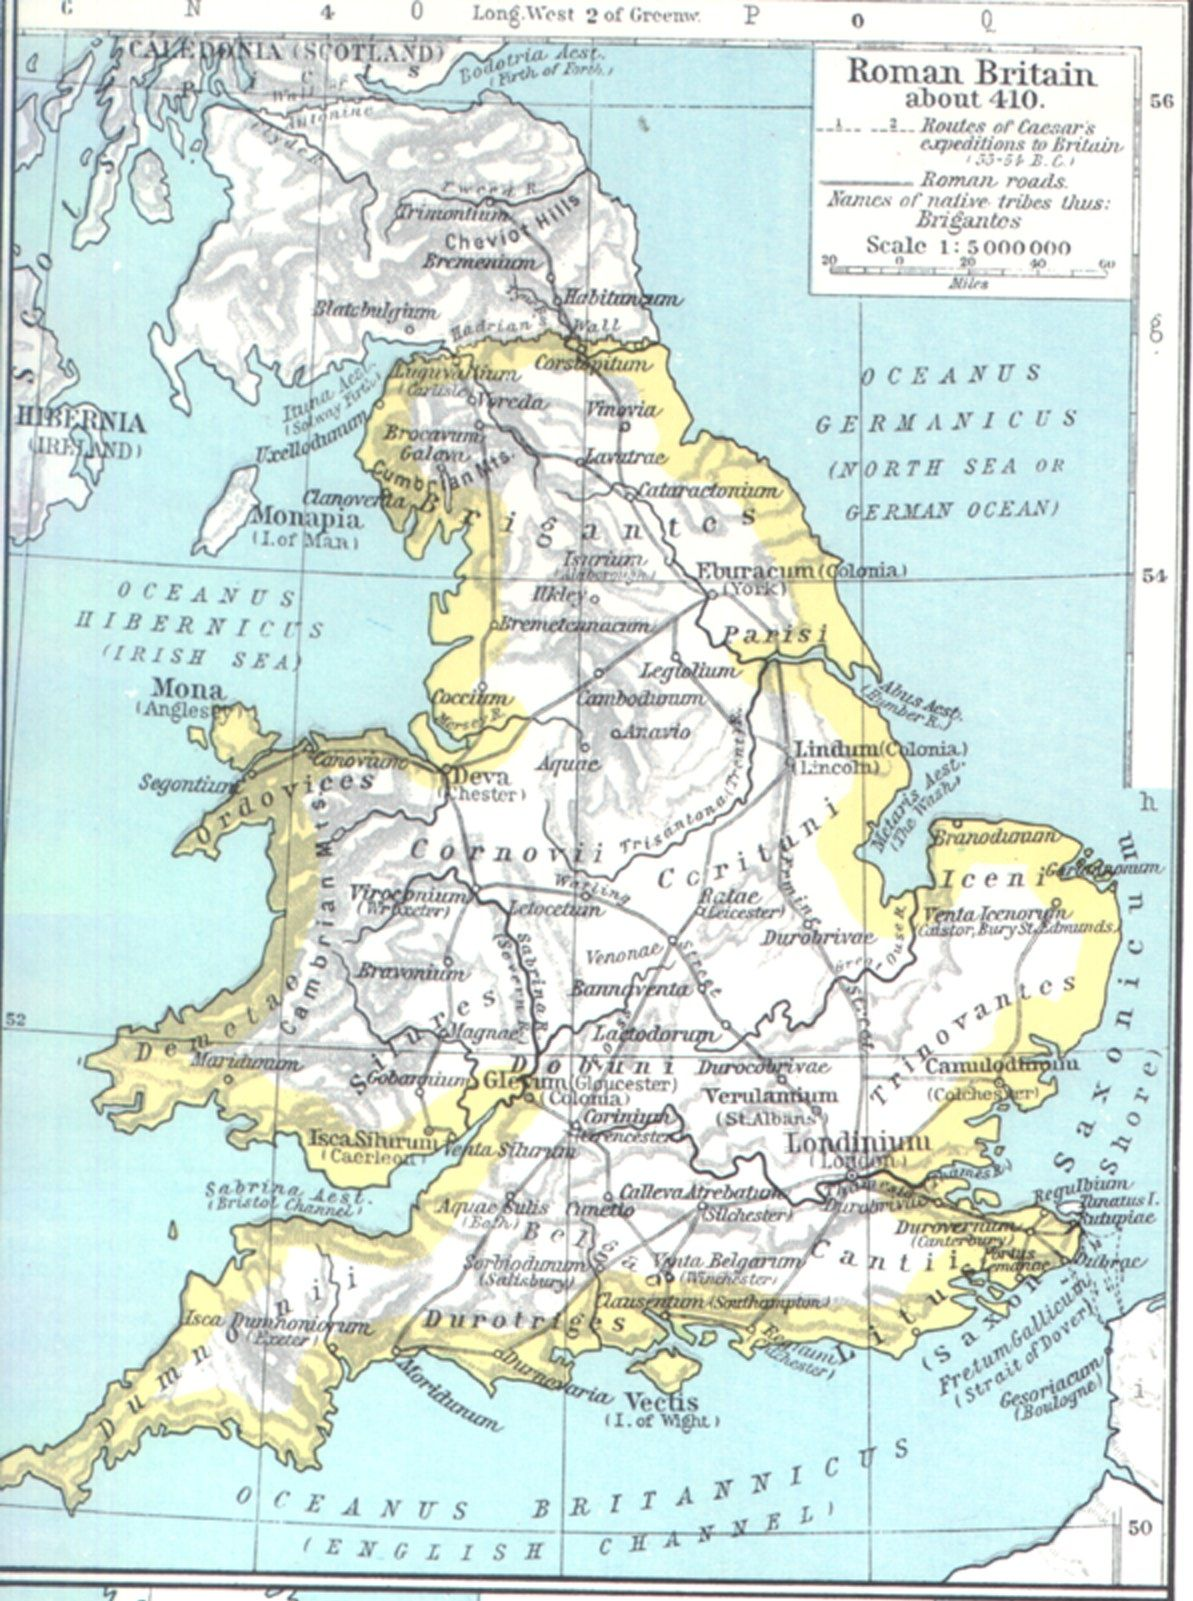 Feudal society is a military order in which a ruler or lord offers roman britain about 410 by william shepherd from historical atlas edition page coritani is an error for corieltauvi gumiabroncs Choice Image